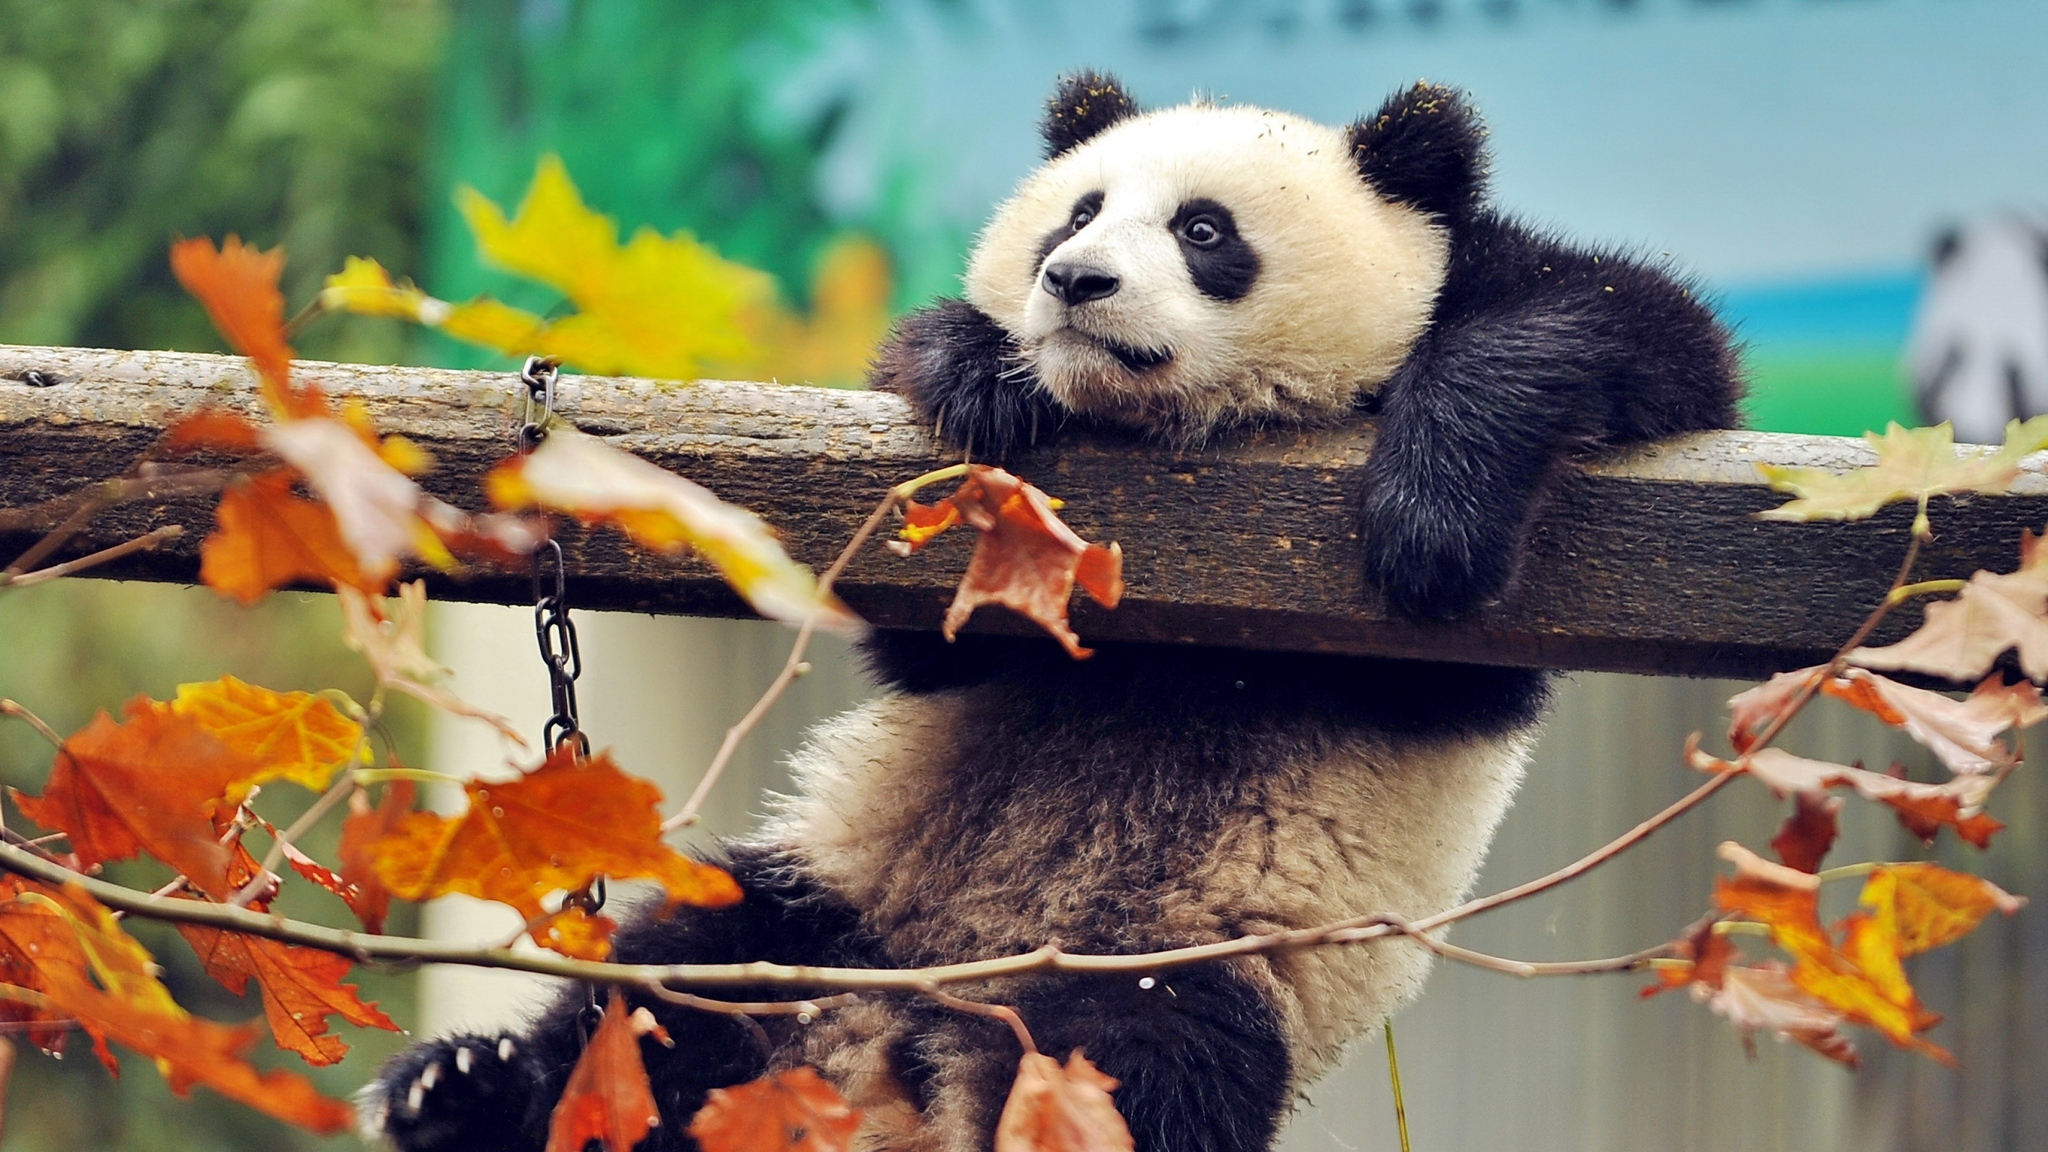 HD Panda Wallpapers HD, Desktop Backgrounds 2048x1152, Images and ...